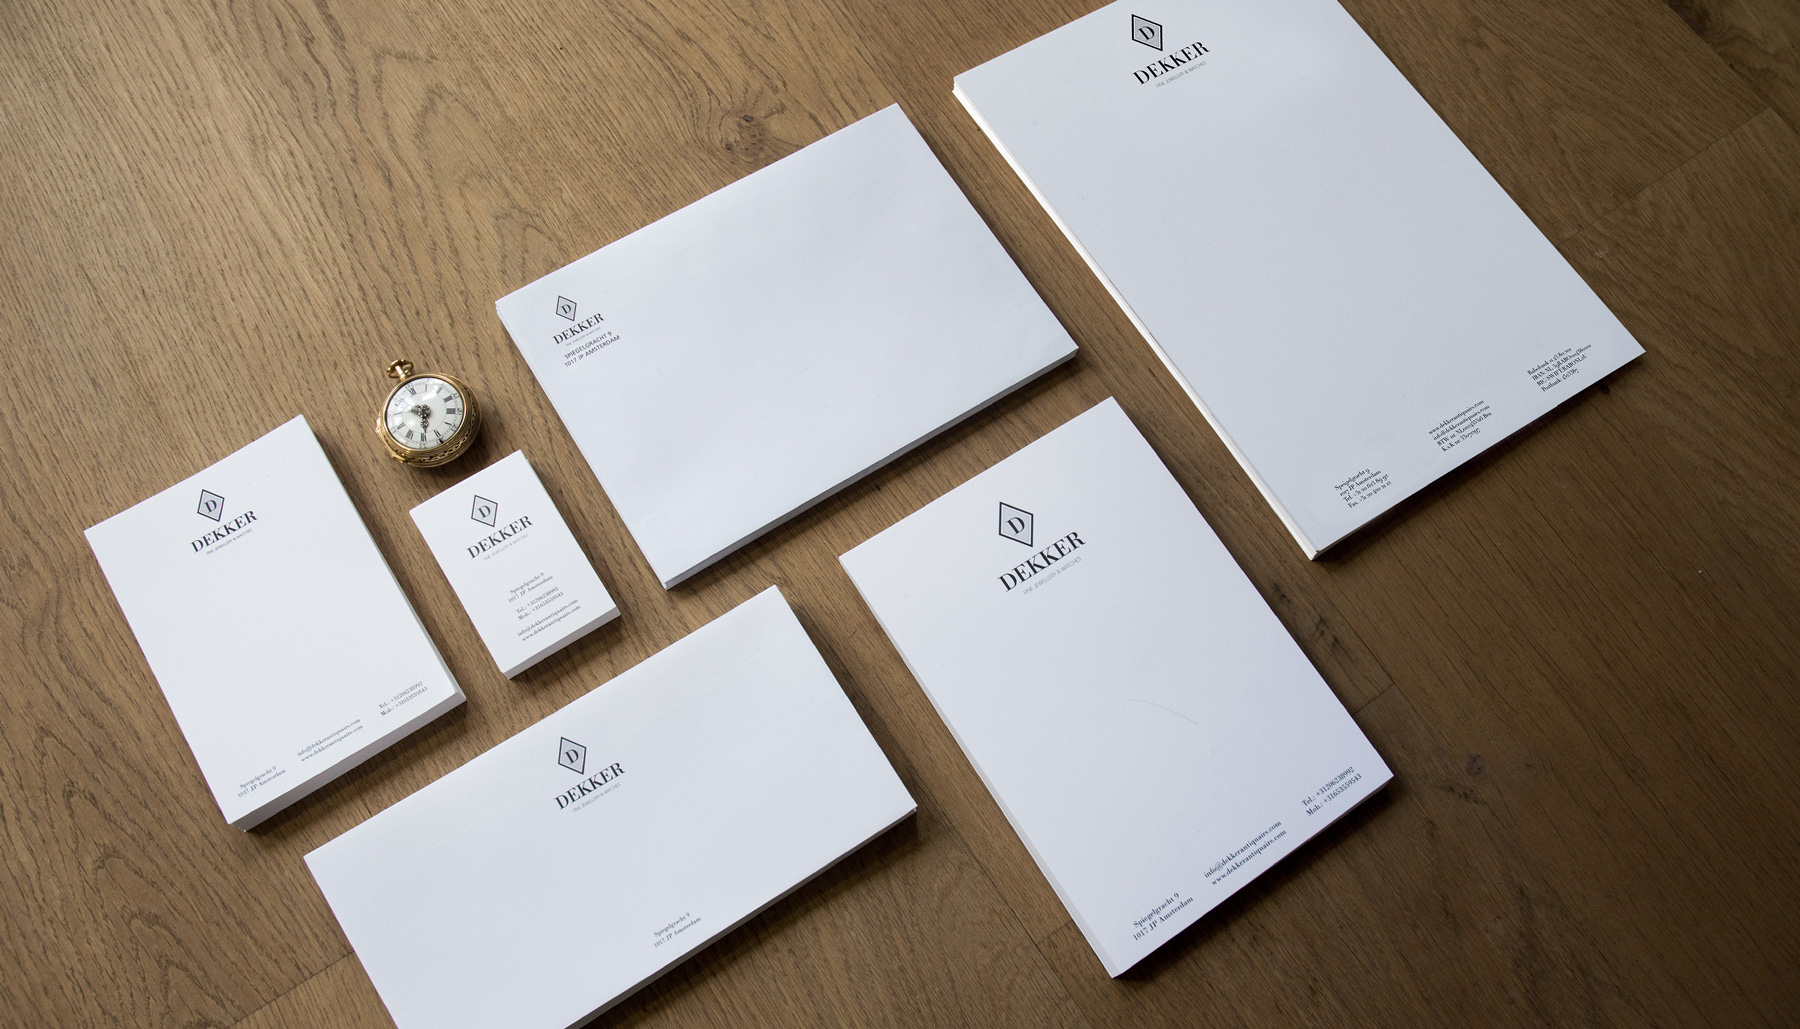 Dekker Antiquairs / Dutchy Design / Branding & Design Portfolio